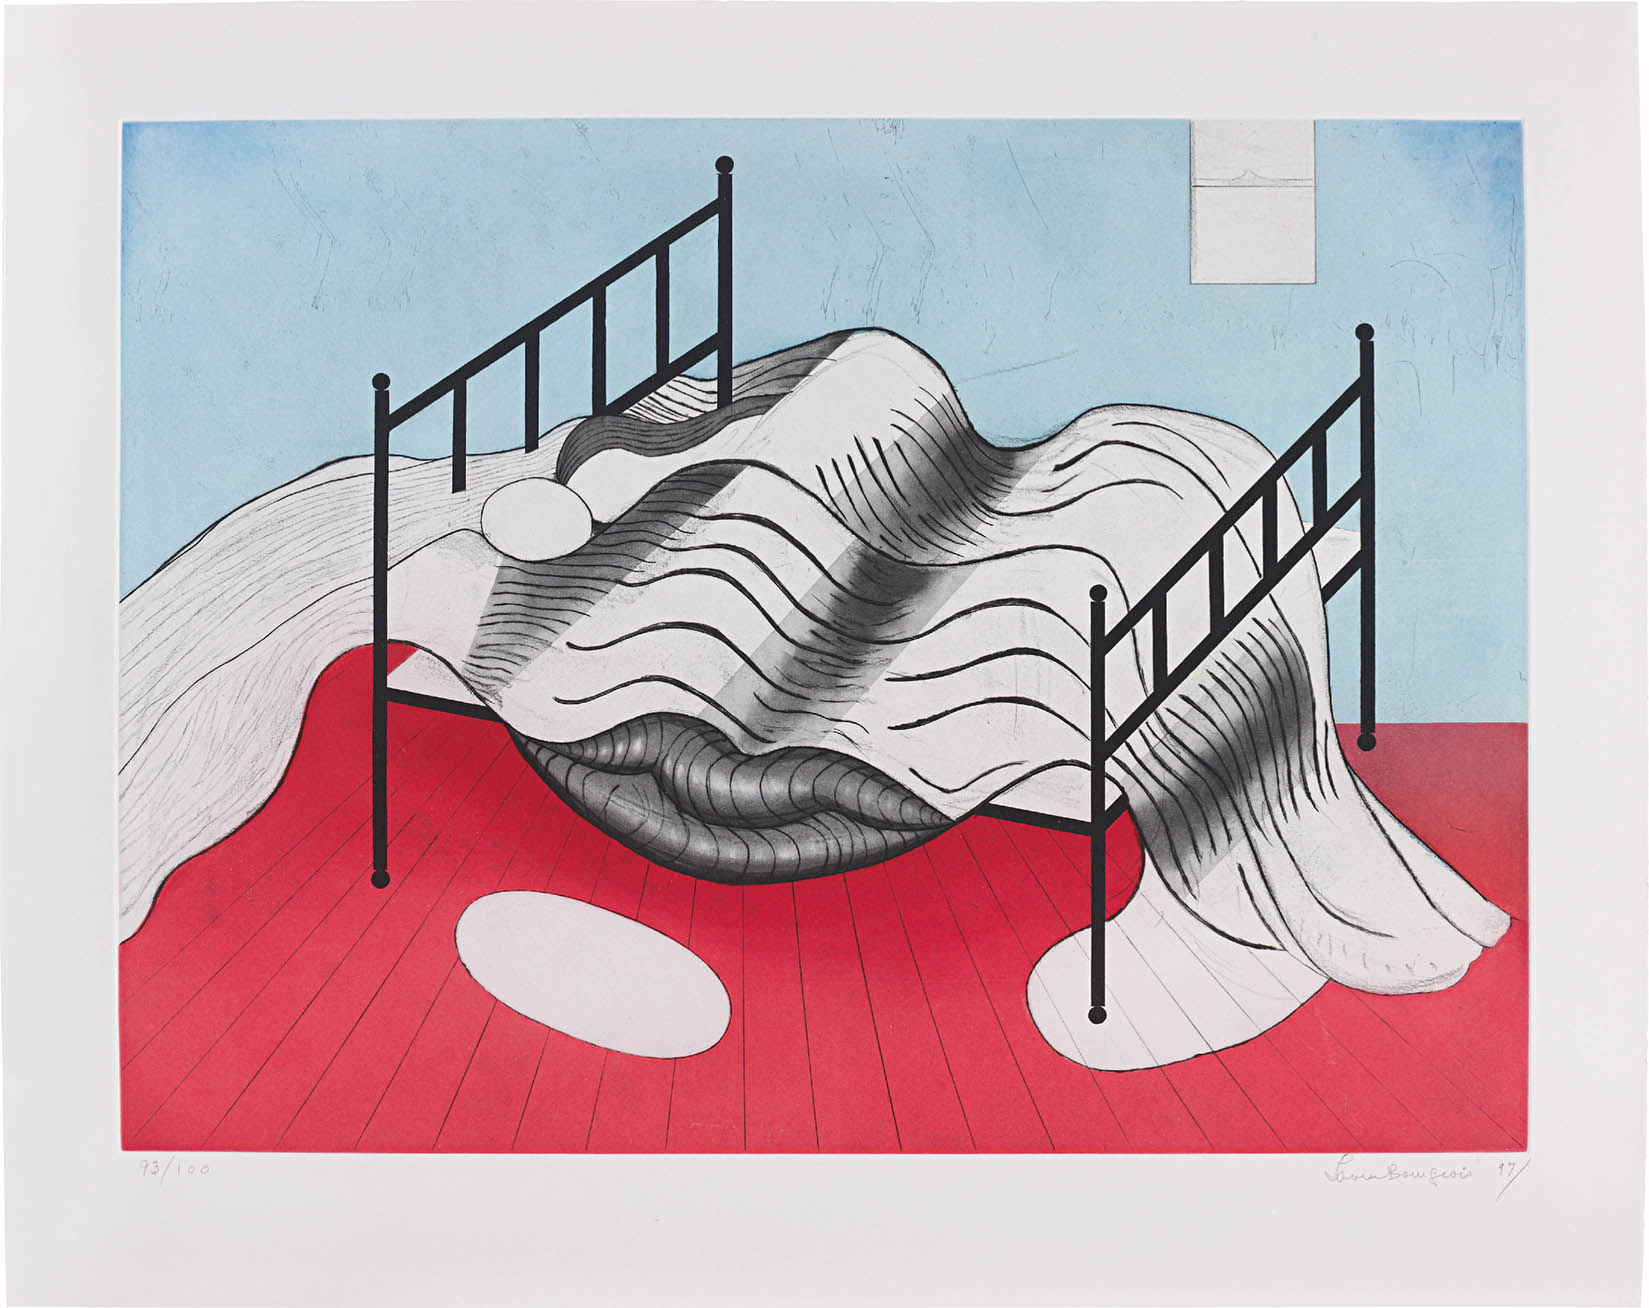 Louise Bourgeois, Le Lit Gros Edredon (With Lips), 1997